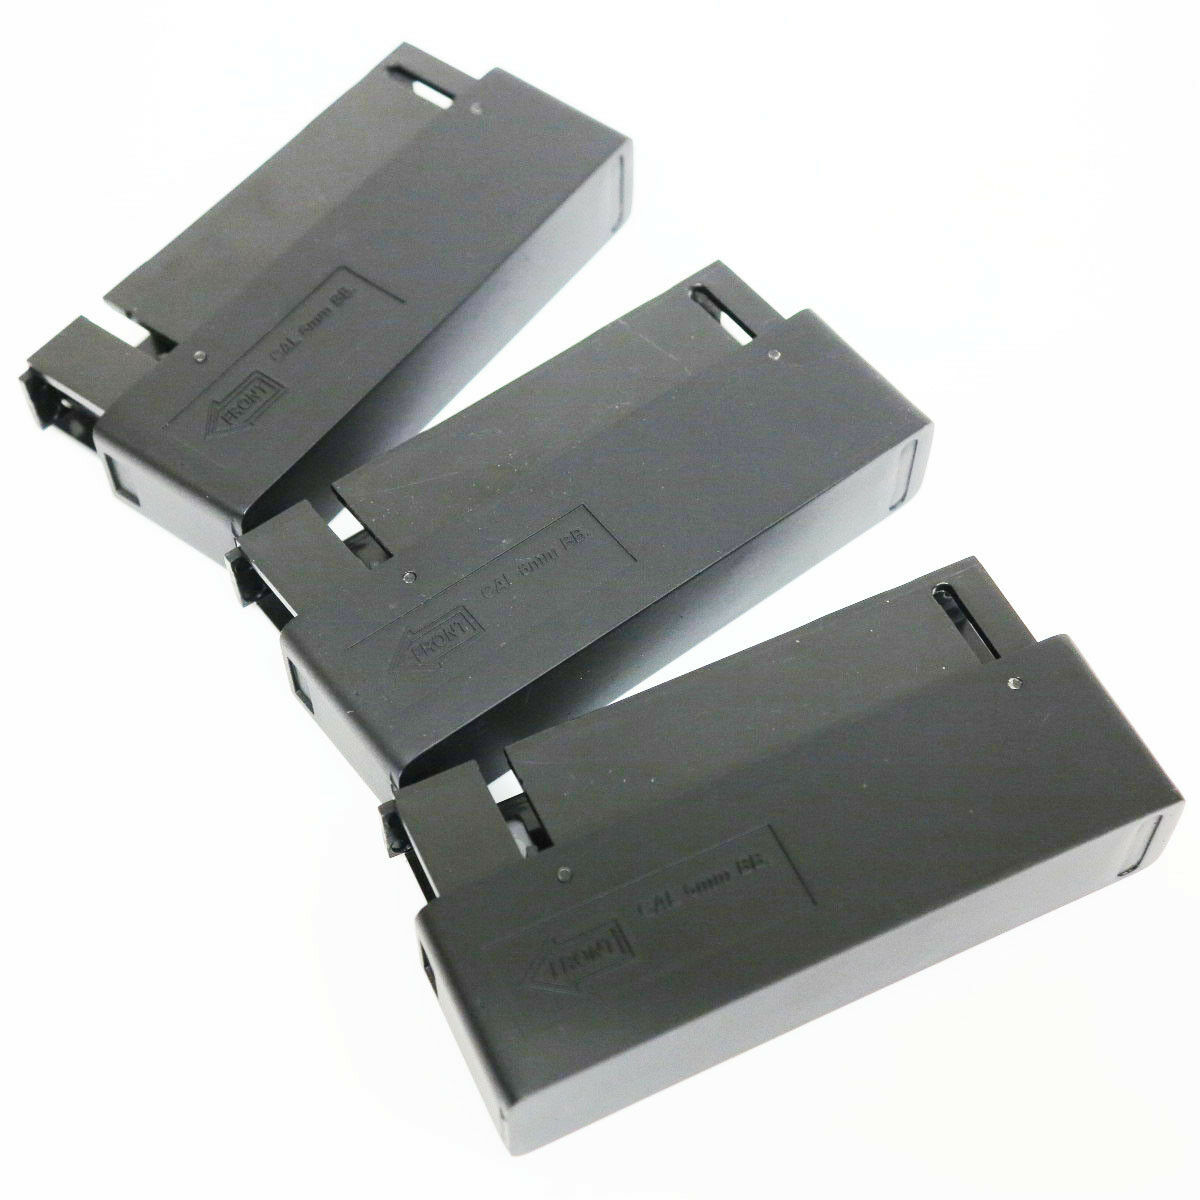 Airsoft WELL L96 25rd Magazine for MB01   MB04   MB05   G21   G22 Sniper (3pcs)